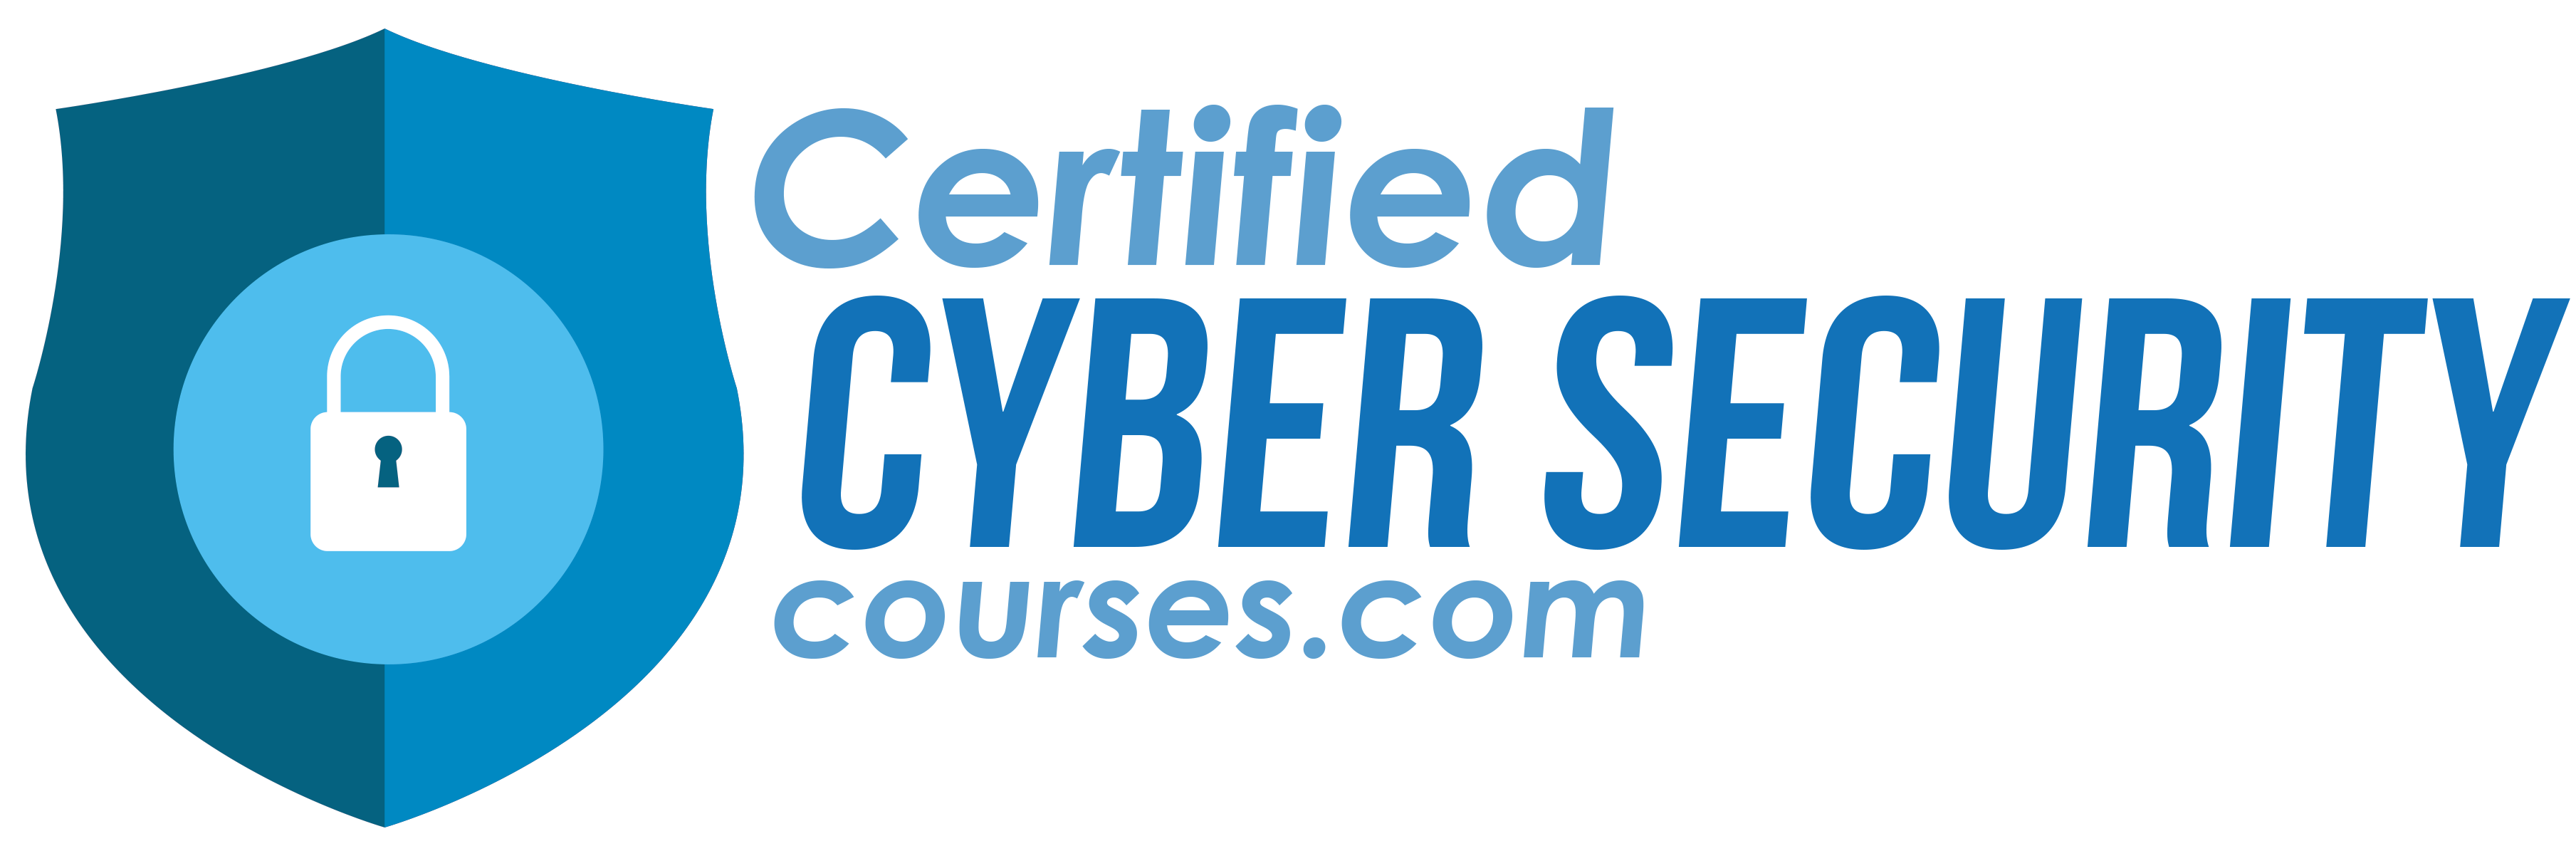 Certified Cyber Security Courses